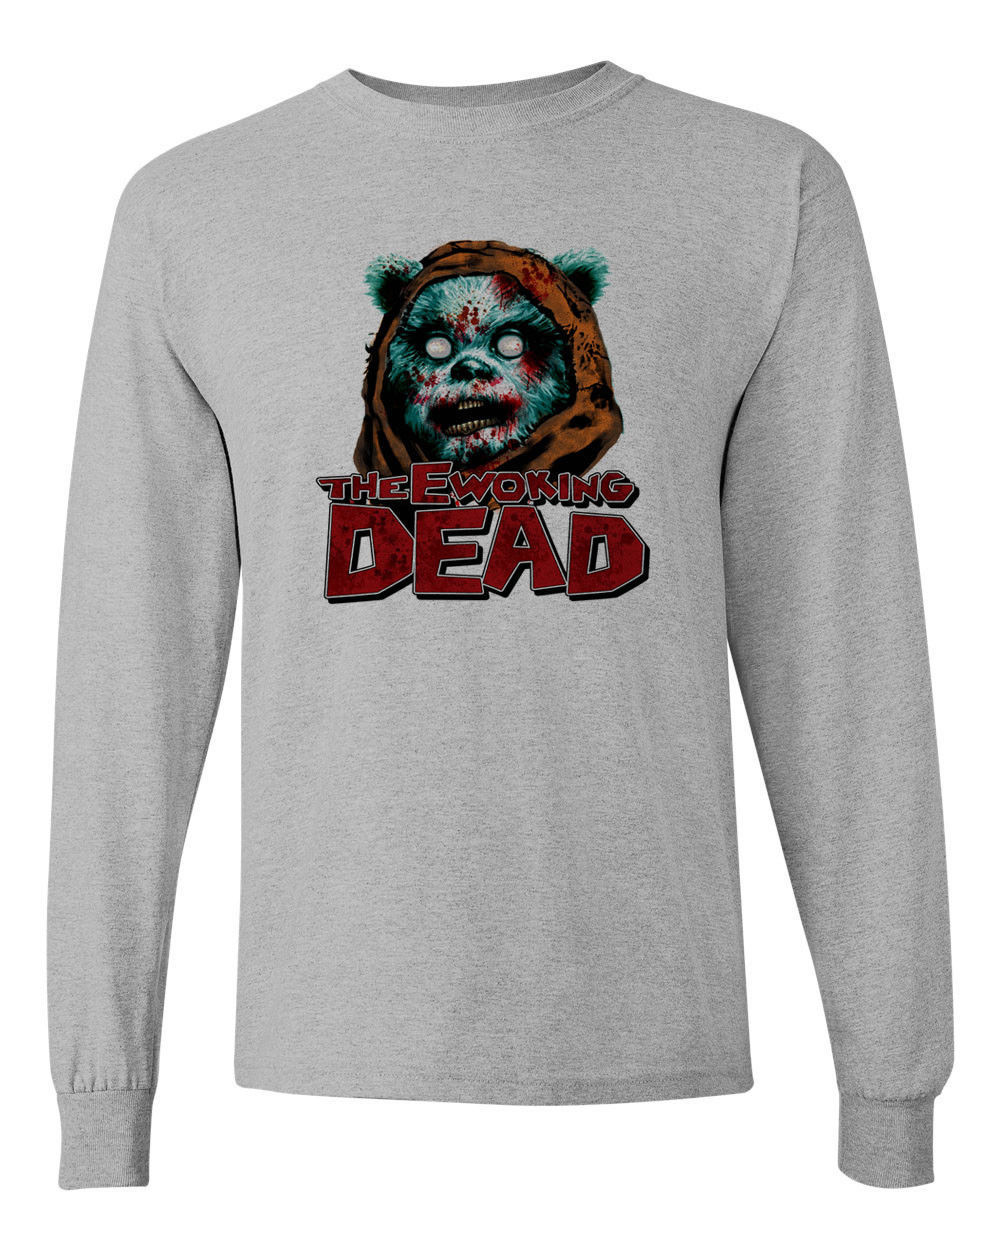 Ewoking Dead t shirt star wars The Walking Dead horror sci fi long sleeve tee